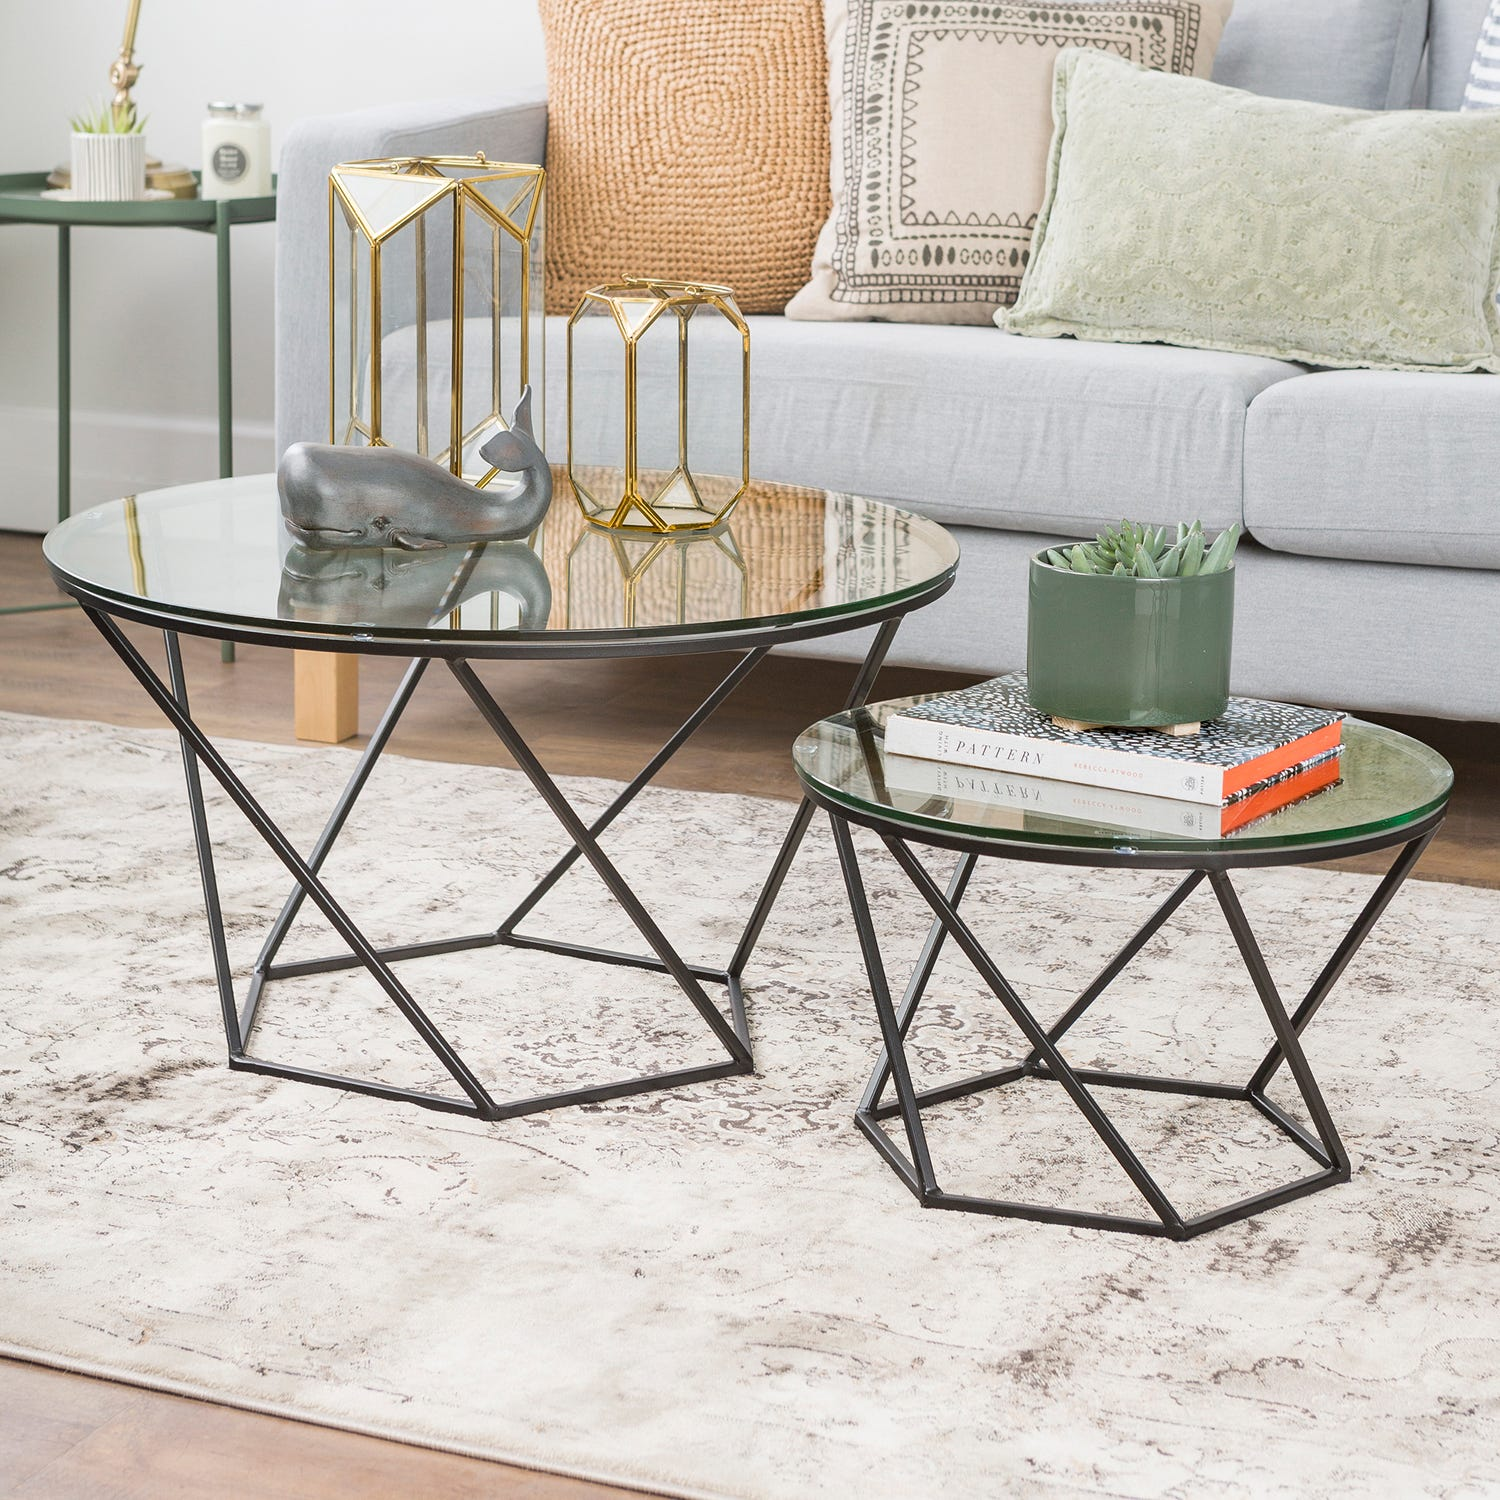 black geometric glass nesting coffee tables pier end thank you liberty furniture showroom universal children wooden crate nightstand diy clear ashley cribs solid wood mumbai